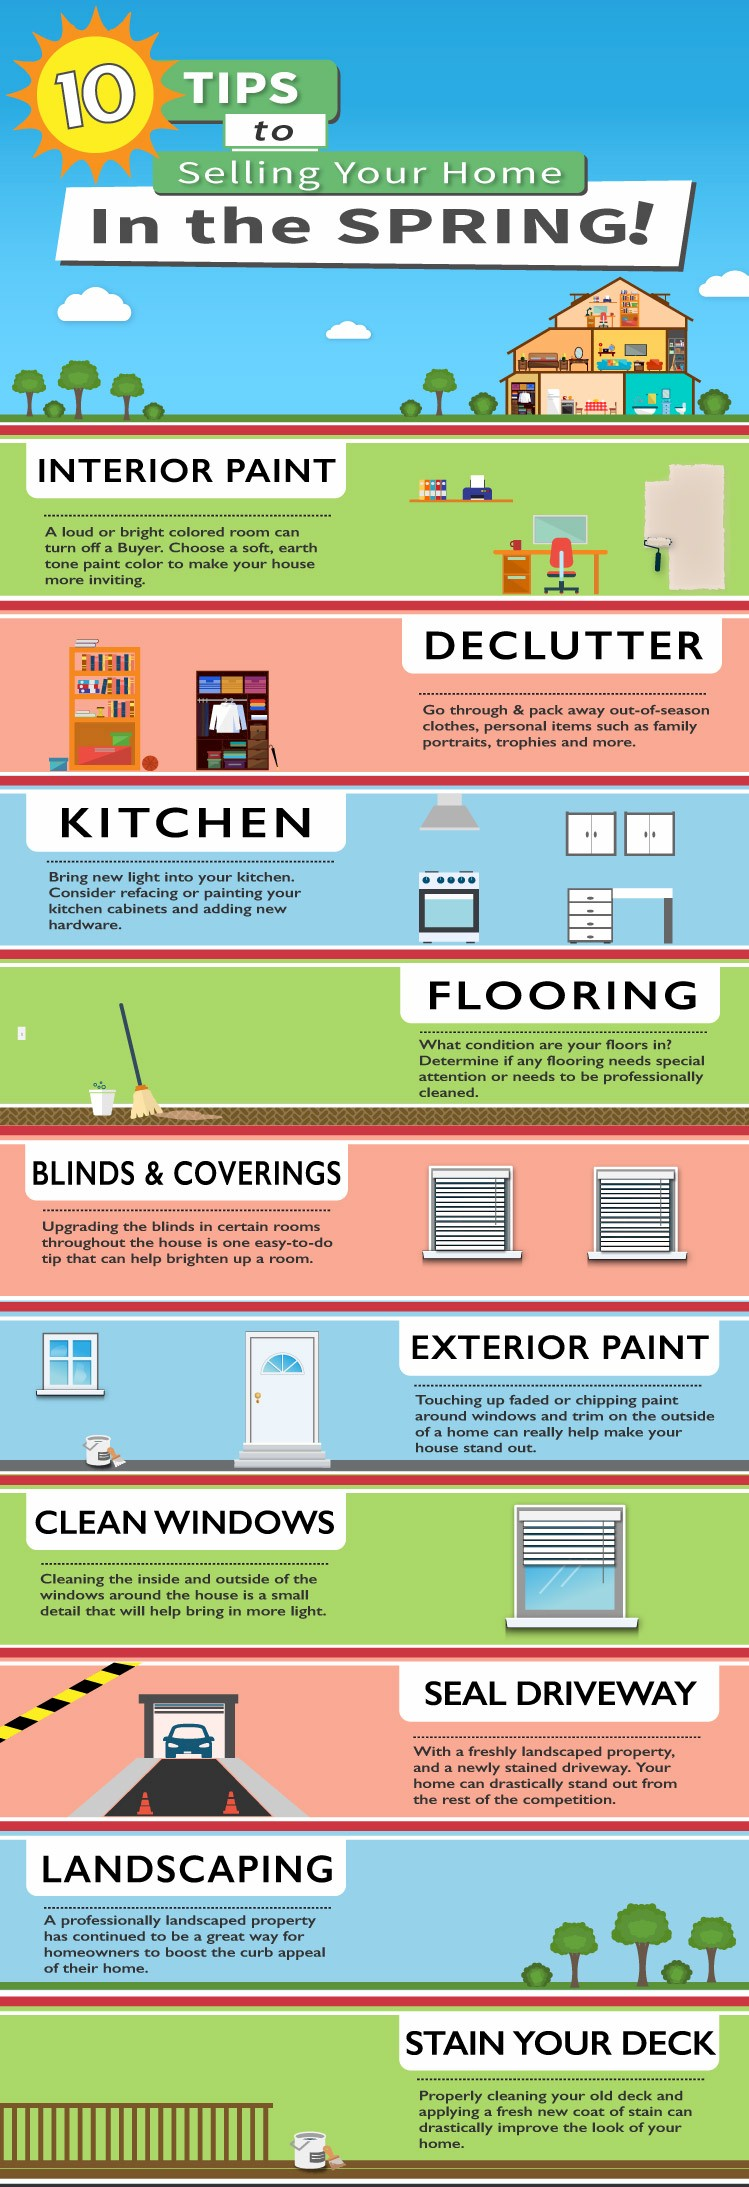 10 Easy Things To Do To Get Ready To List Your House In The Spring